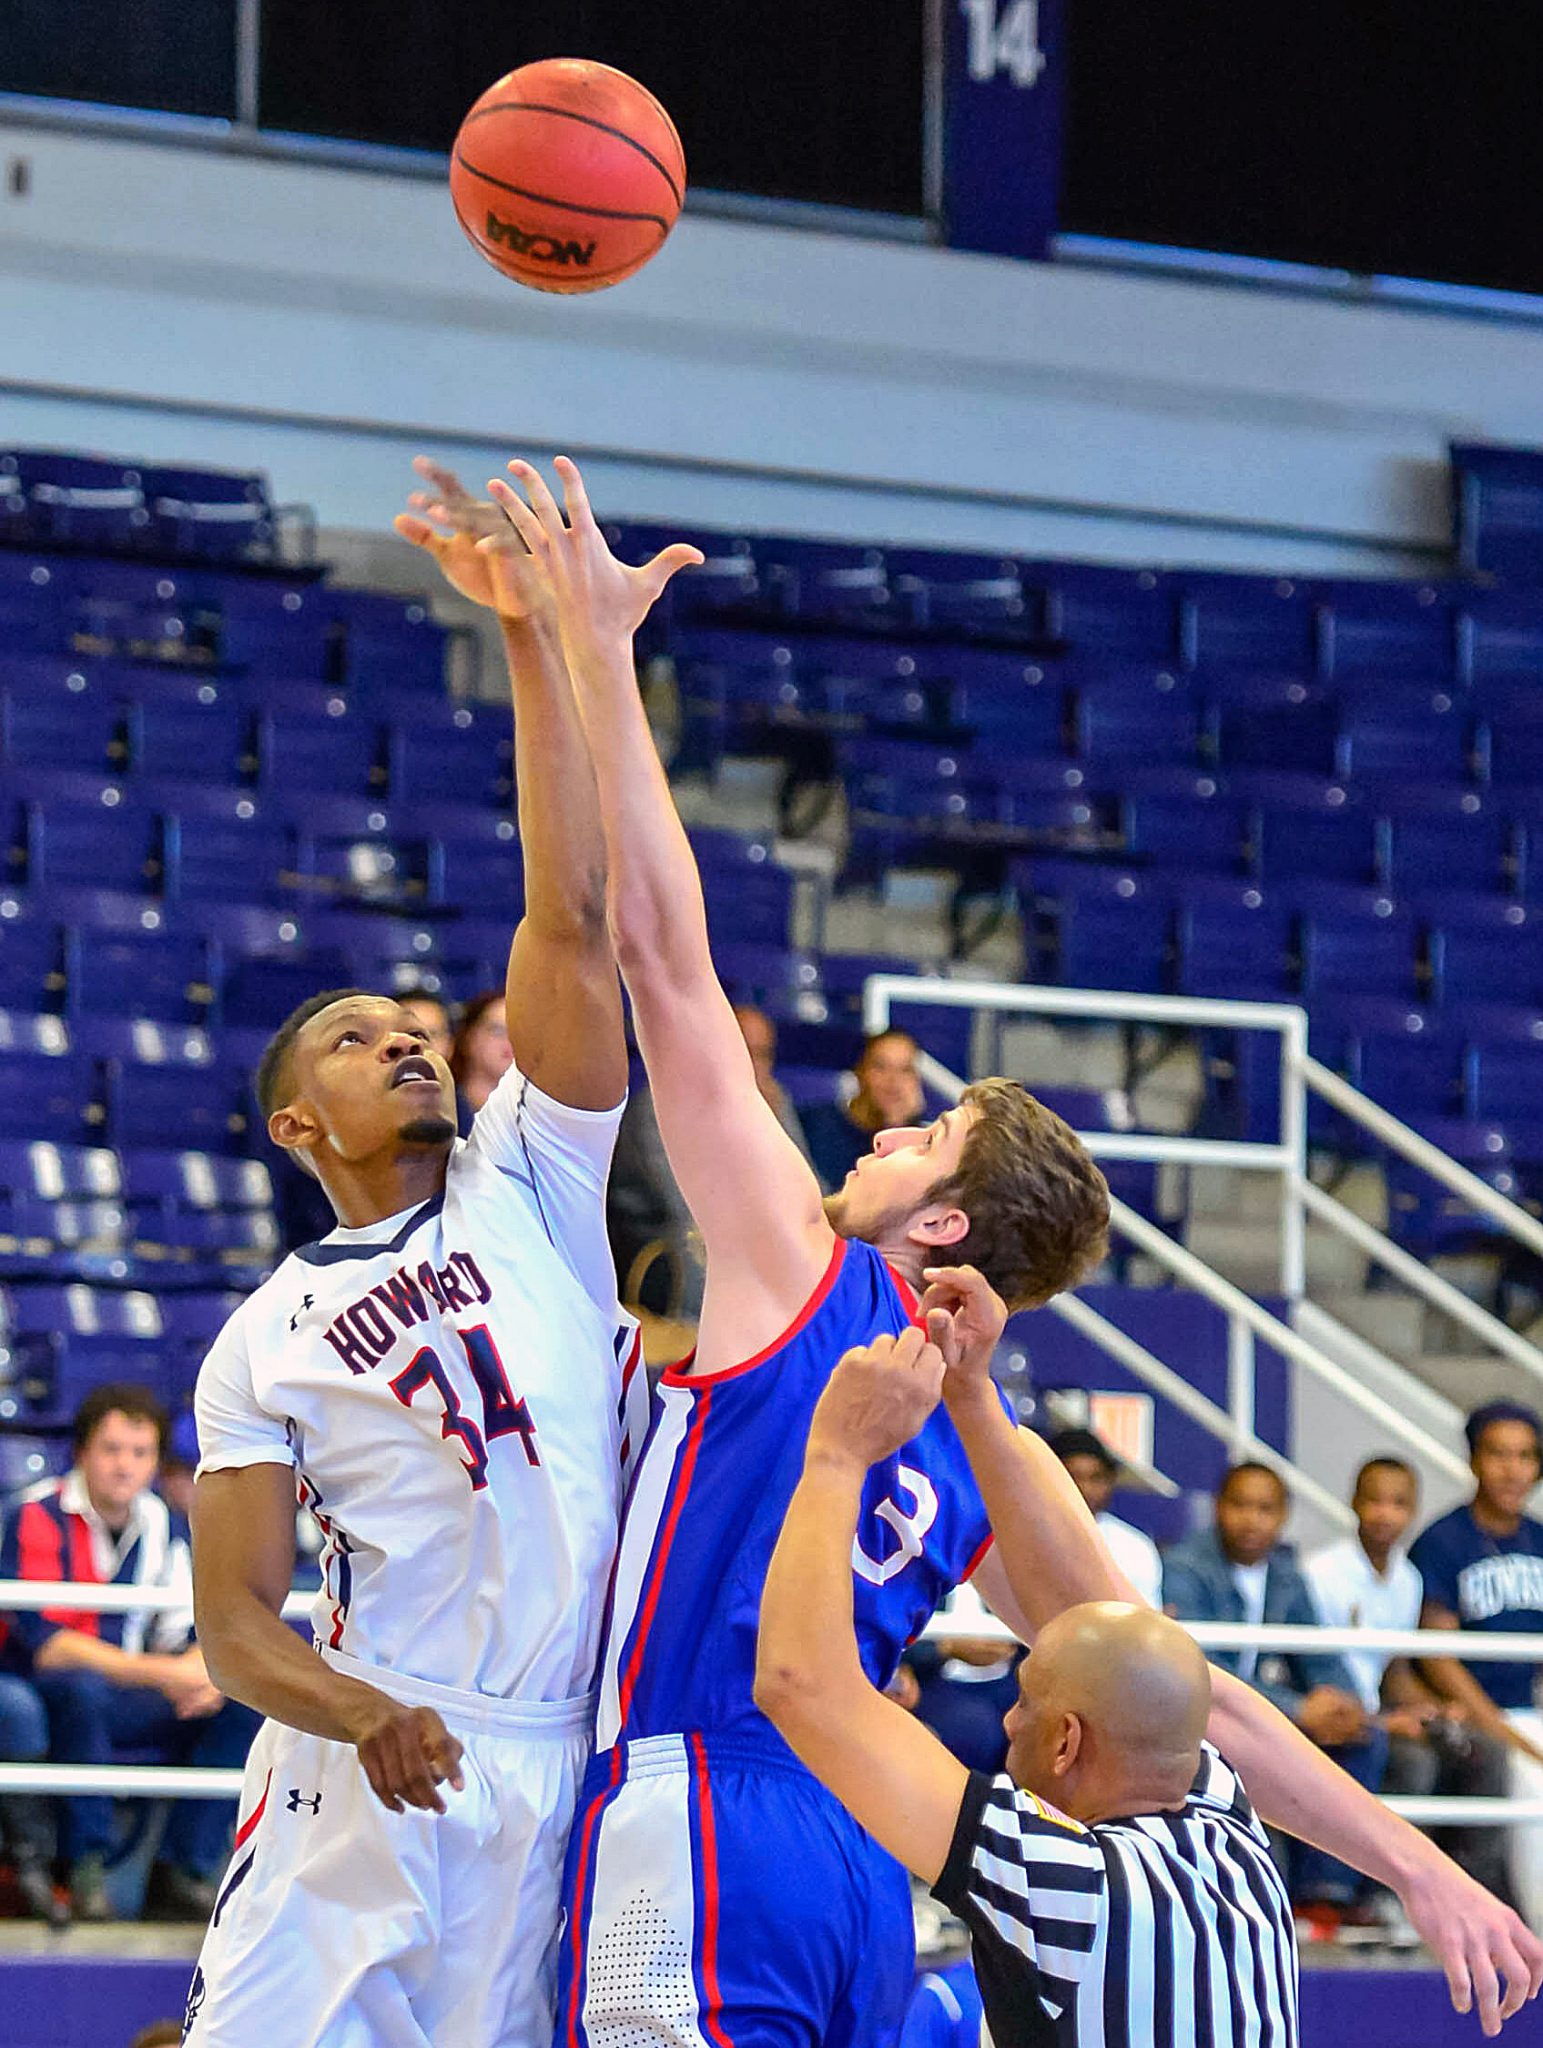 Howard University forward Michael Obindu wins the opening tipoff of Howard's 71-54 win over the American University Eagles at Burr Gymnasium in Northwest on Saturday, Dec. 3./Photo courtesy Abdullah Yusuf